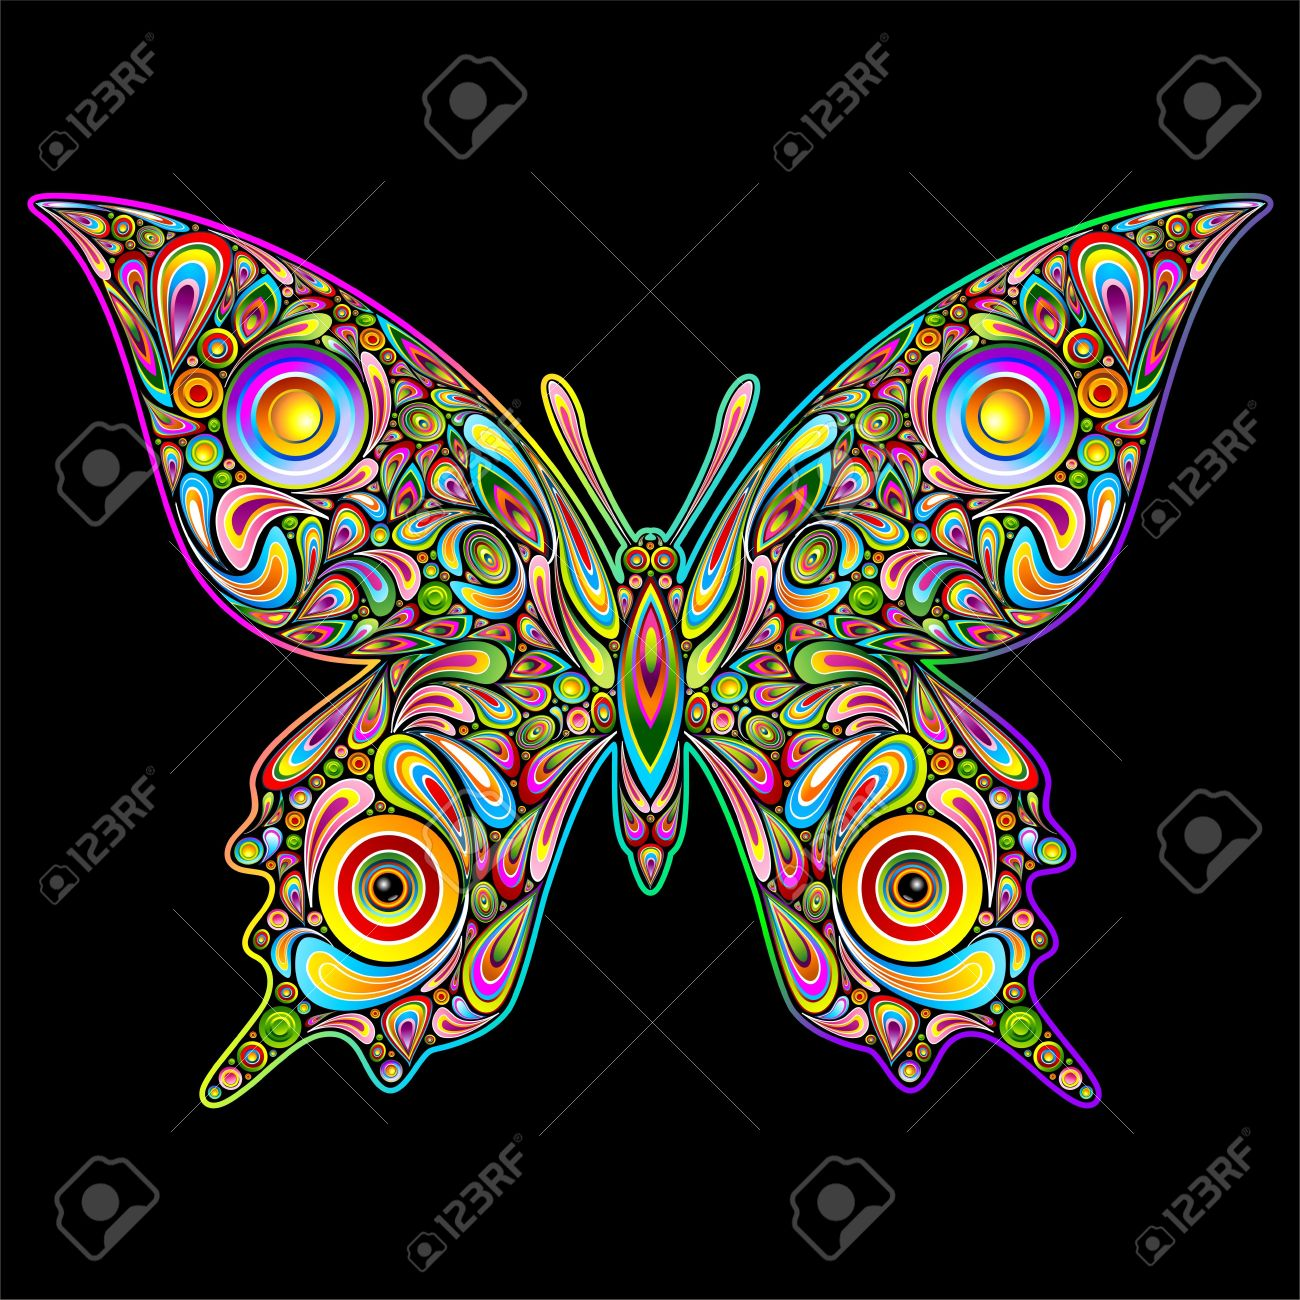 Butterfly Psychedelic Art Design Stock Vector - 15992367